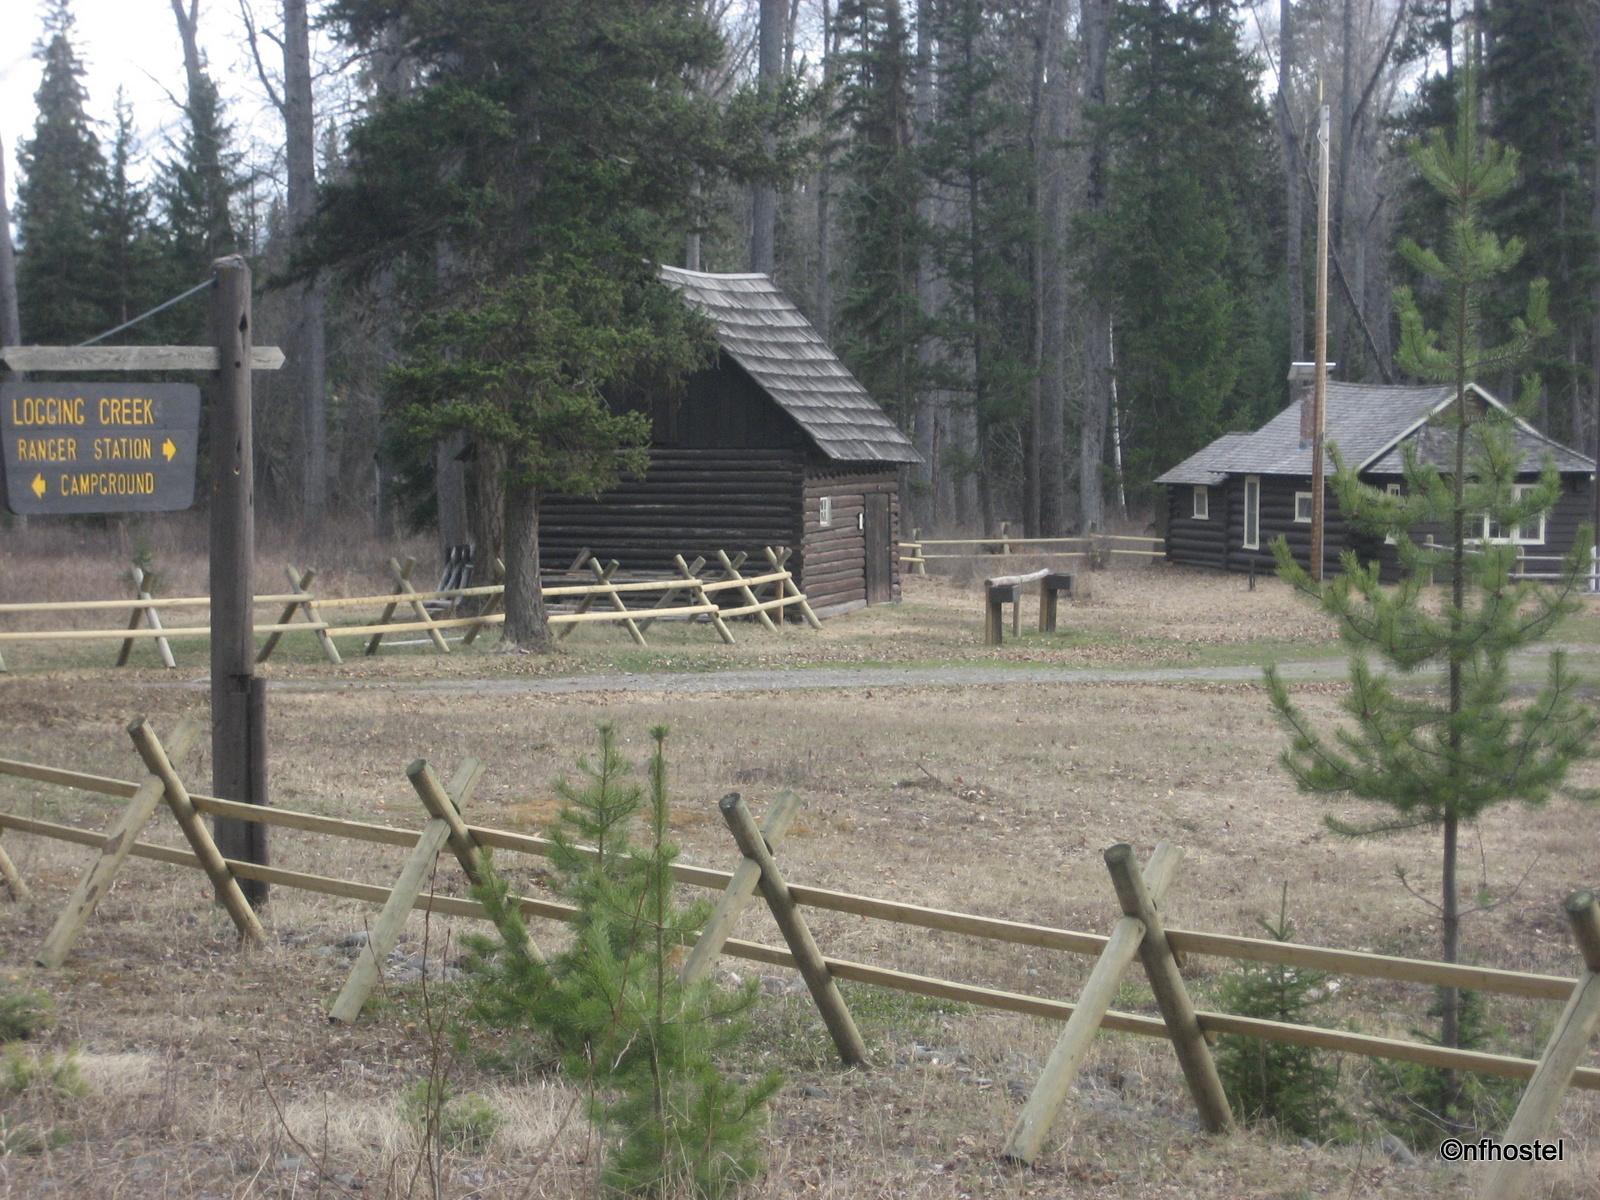 Logging Creek Ranger Station